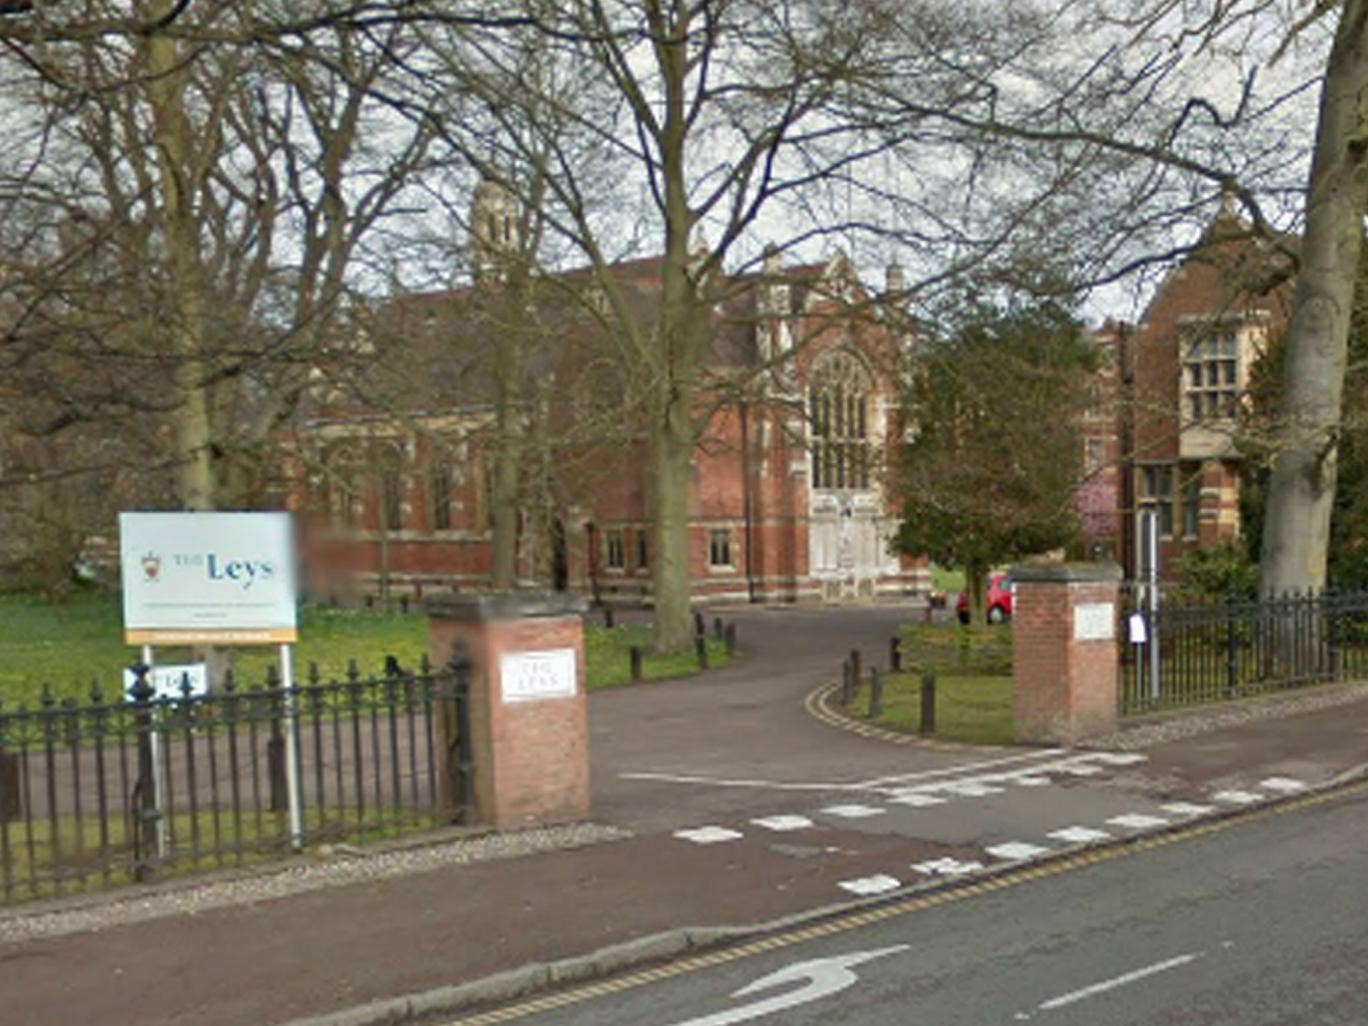 The headteacher at The Leys school in Cambridge, is considering asking a porn star to speak at the school